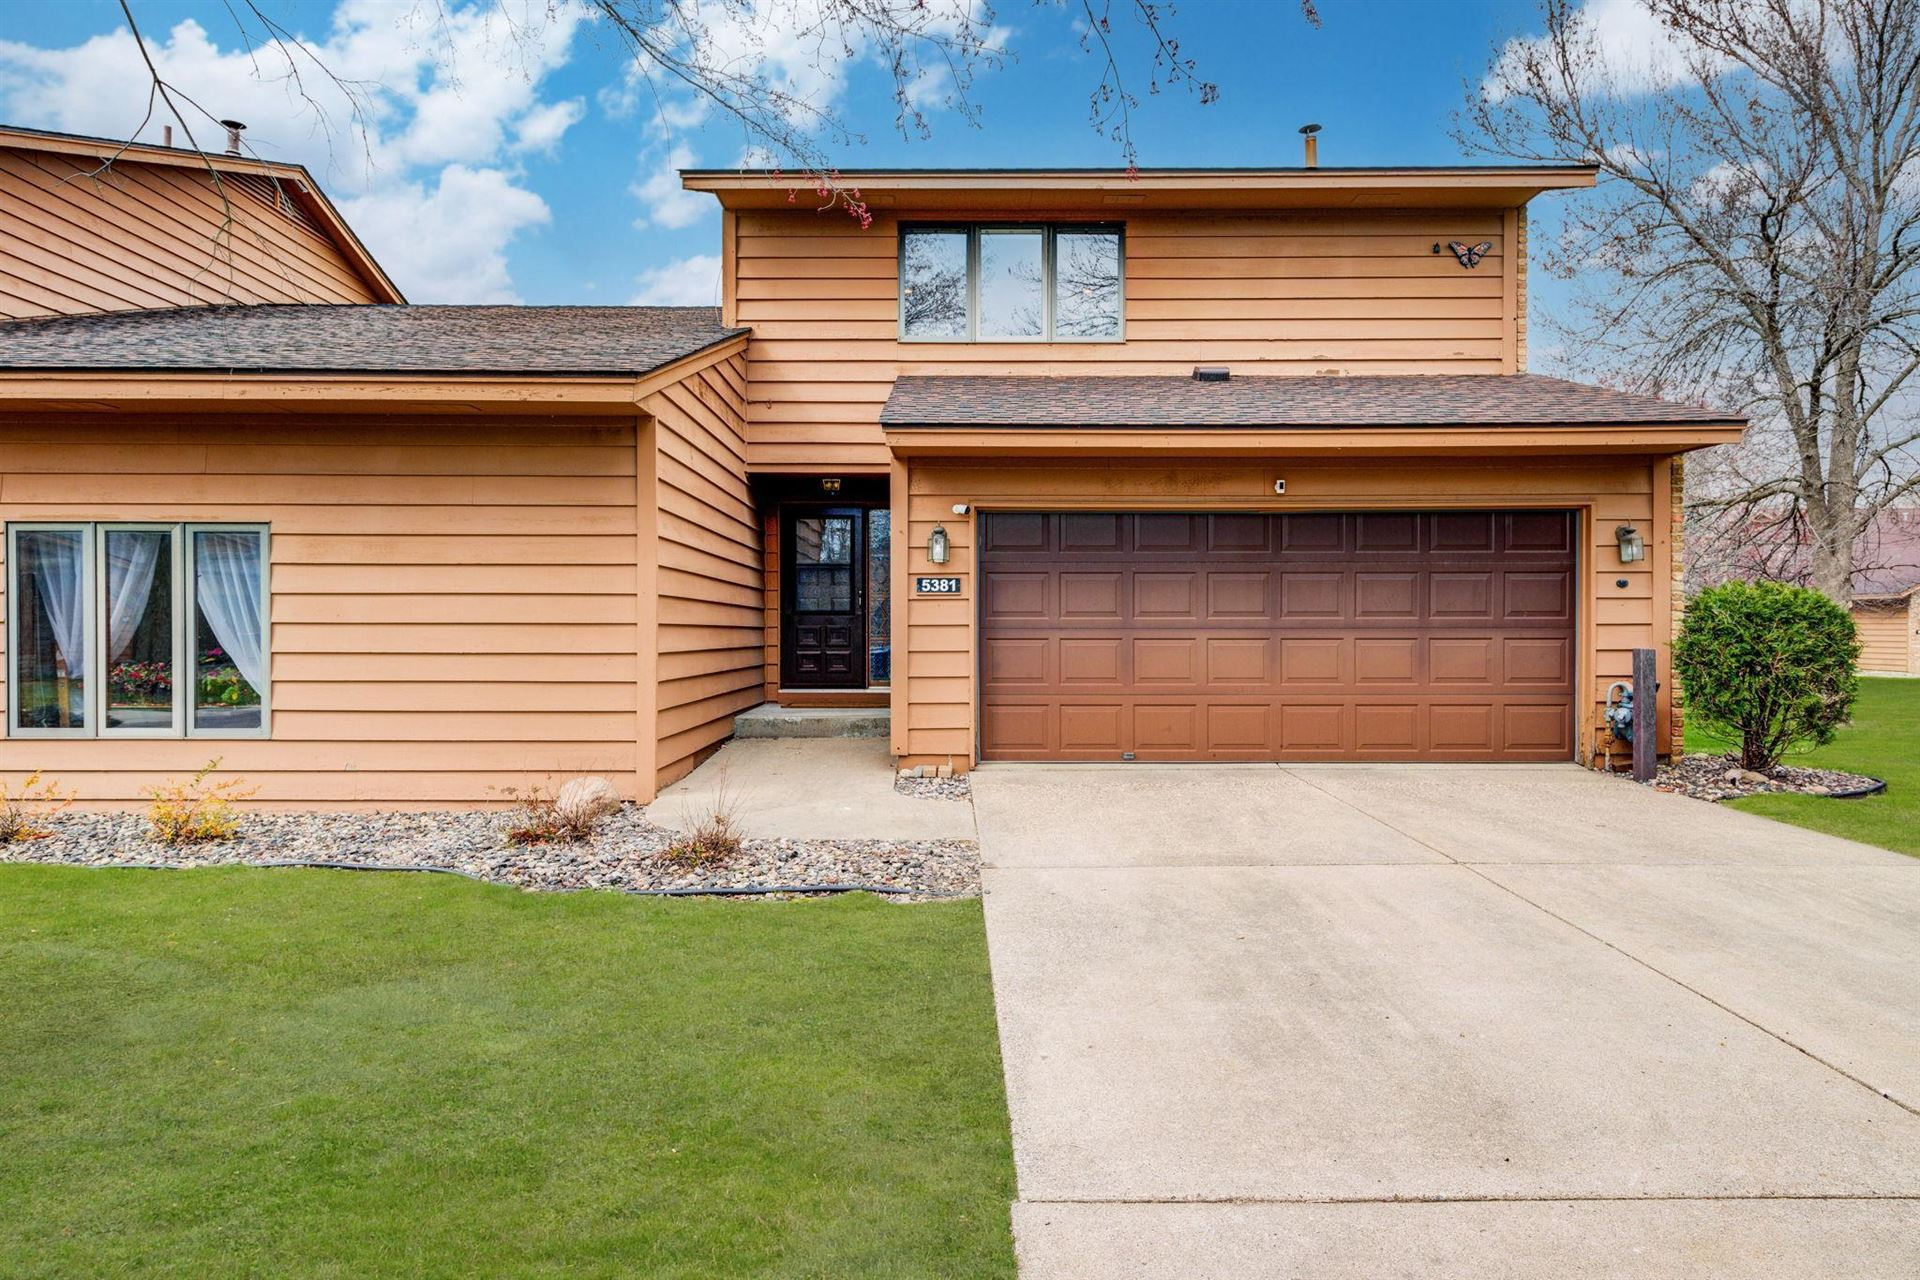 Photo of 5381 Upper 147th Street W, Apple Valley, MN 55124 (MLS # 5740514)